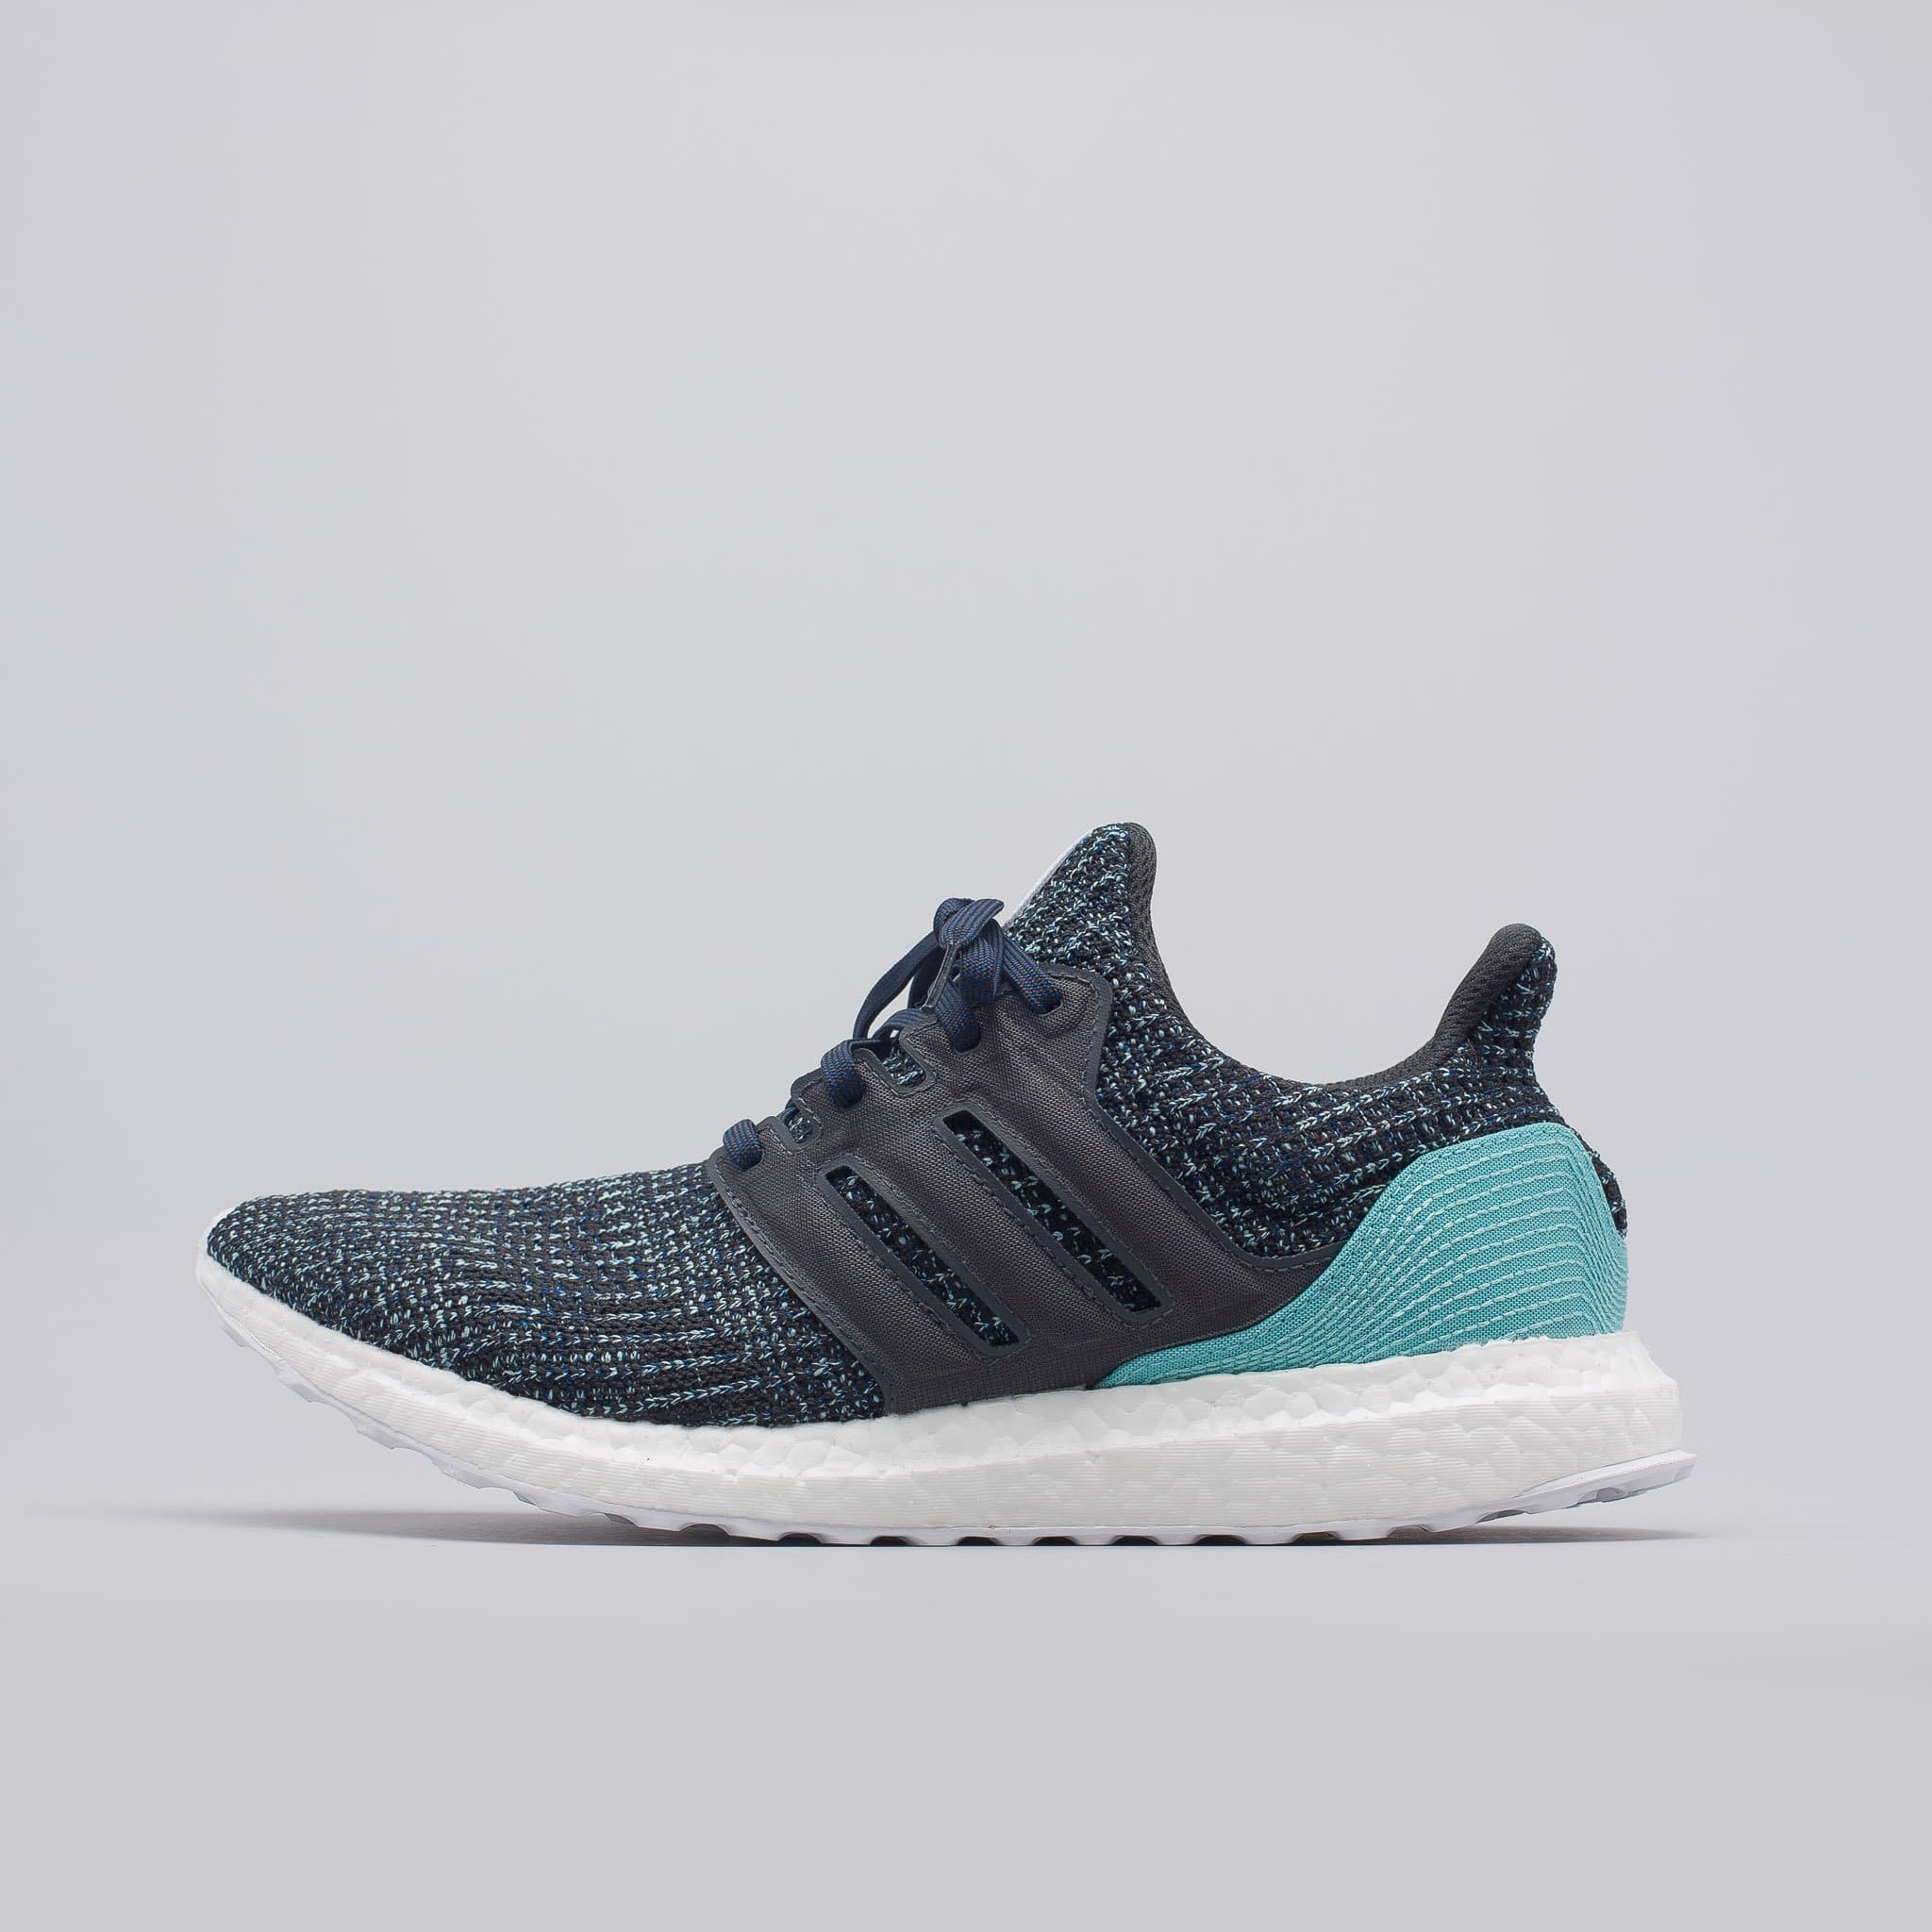 7c0c26ebccc adidas Men s Ultraboost Parley Running Shoes (Carbon) - Slickdeals.net